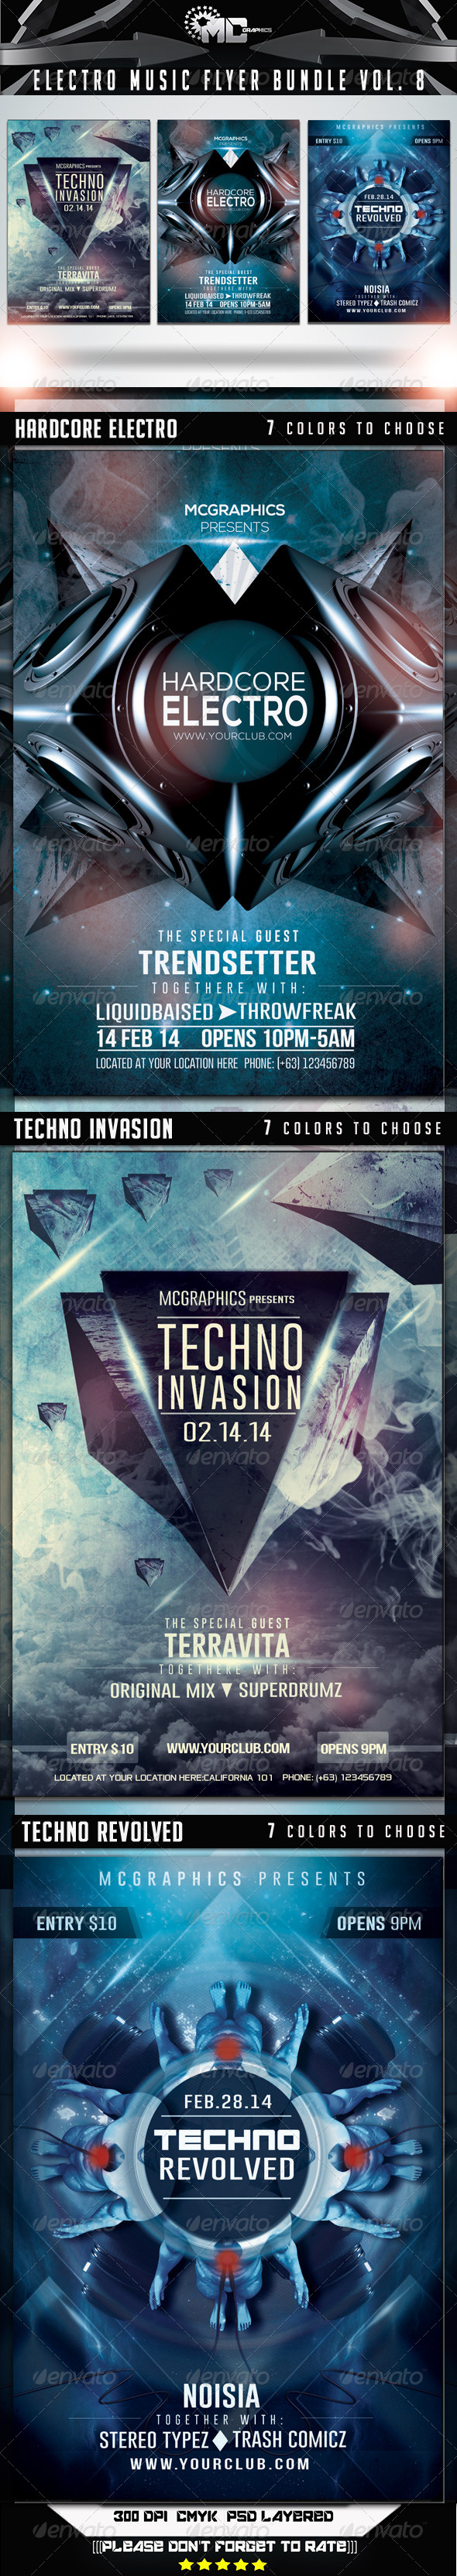 GraphicRiver Electro Music Flyer Bundle Vol 8 7336857